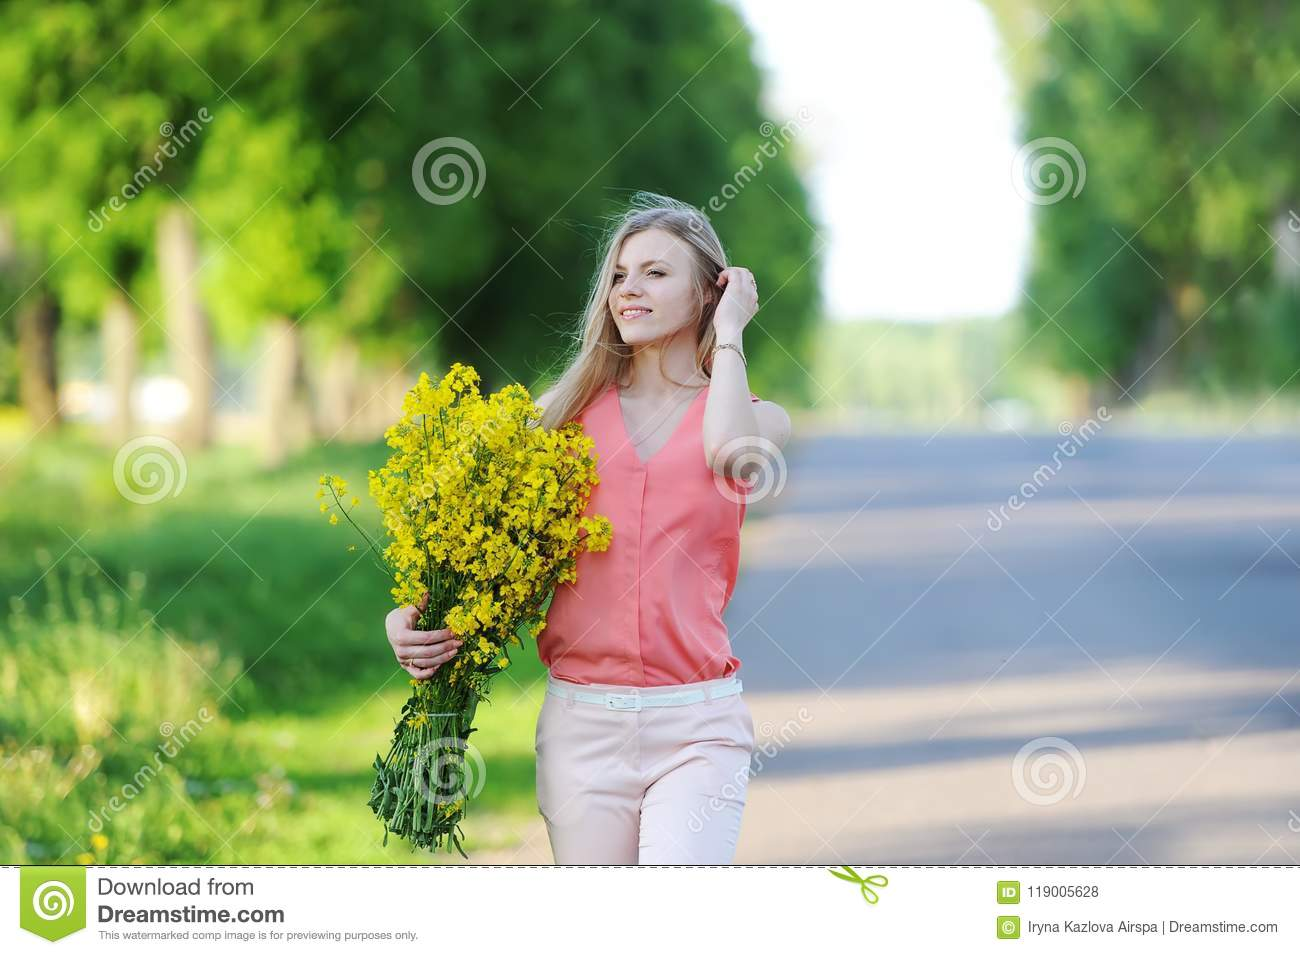 Young woman with bouquet of yellow colors walks on the country road